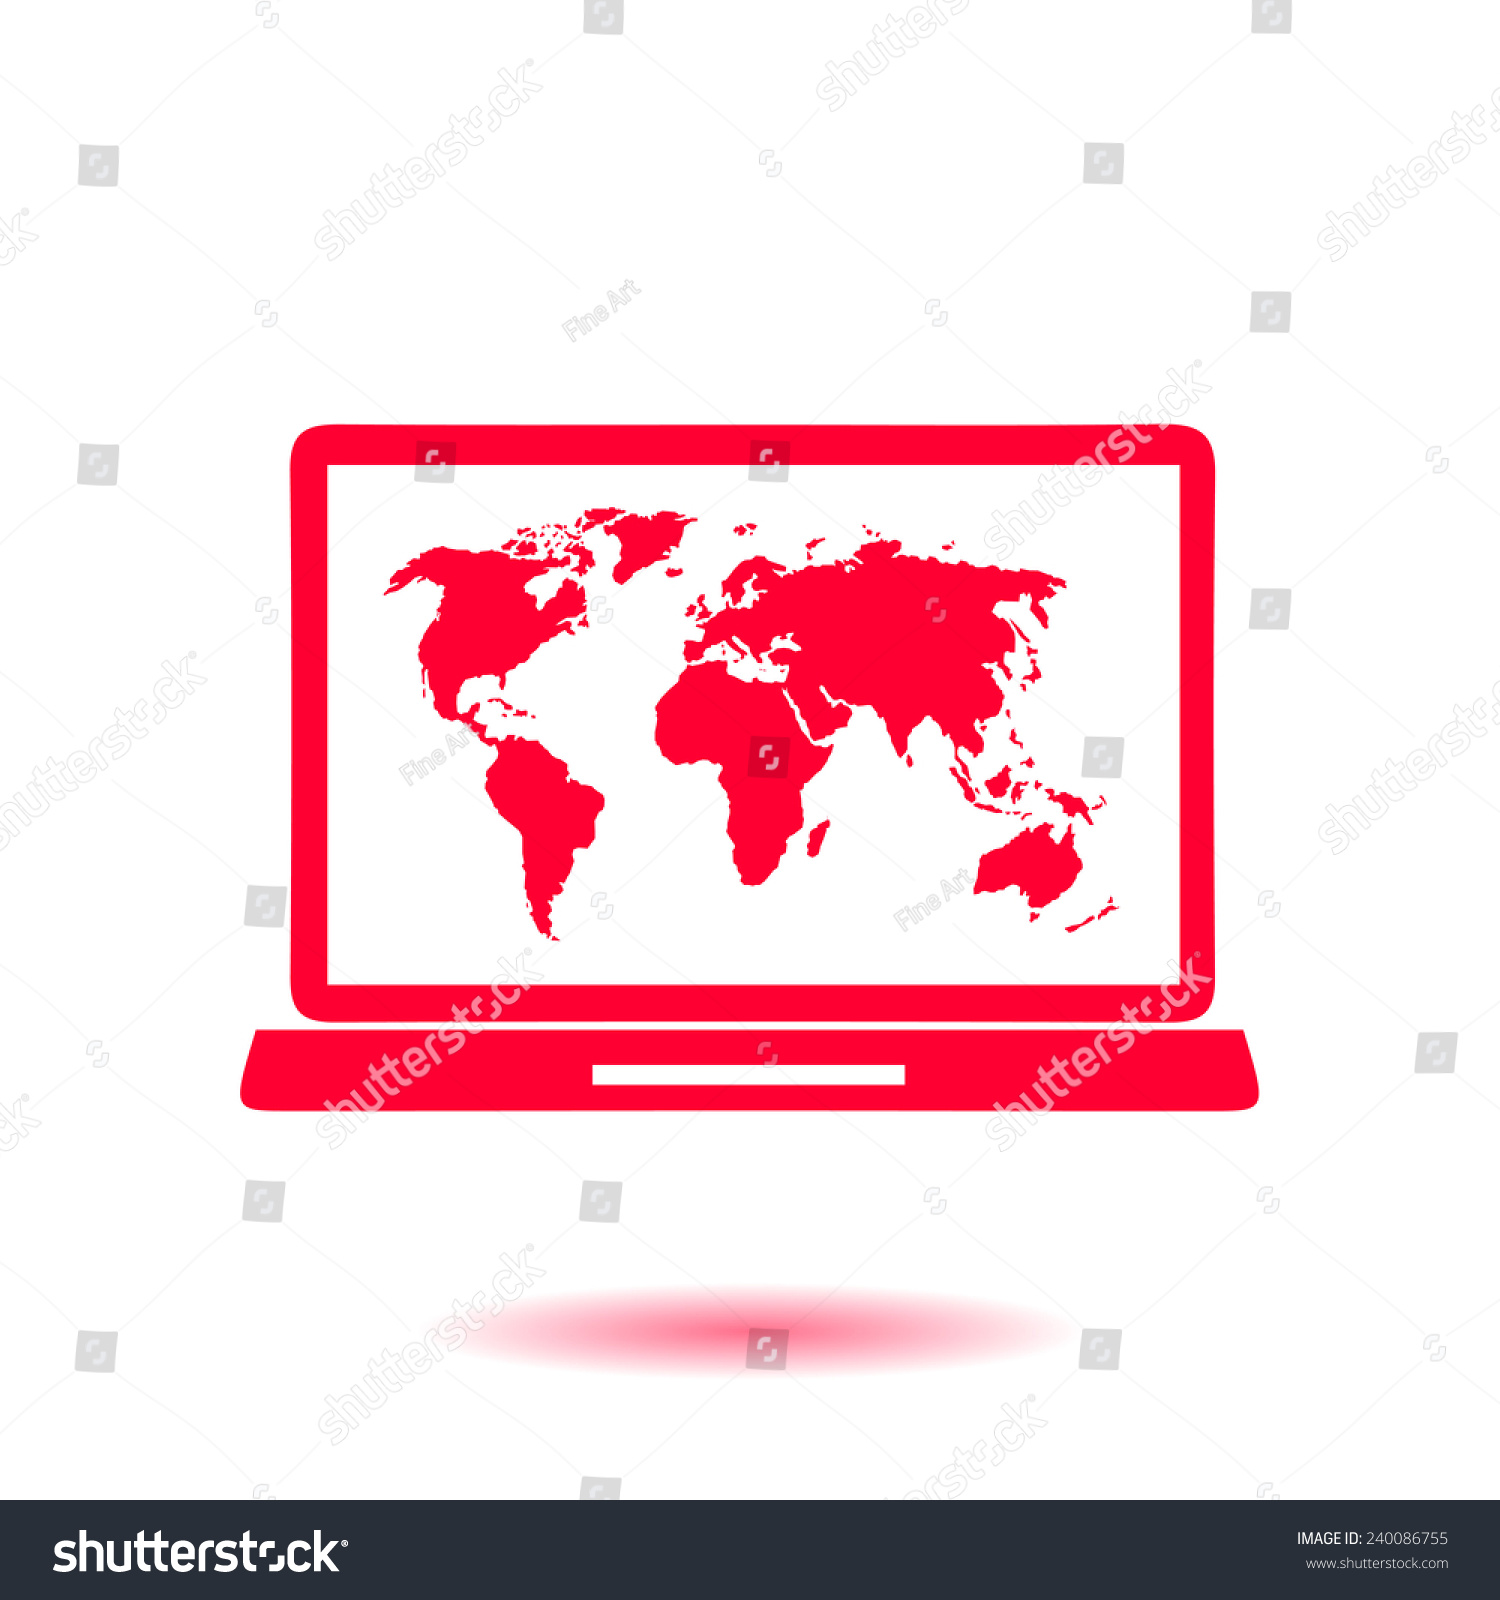 Laptop world map illustration world map stock vector 240086755 laptop world map illustration world map stock vector 240086755 shutterstock gumiabroncs Images